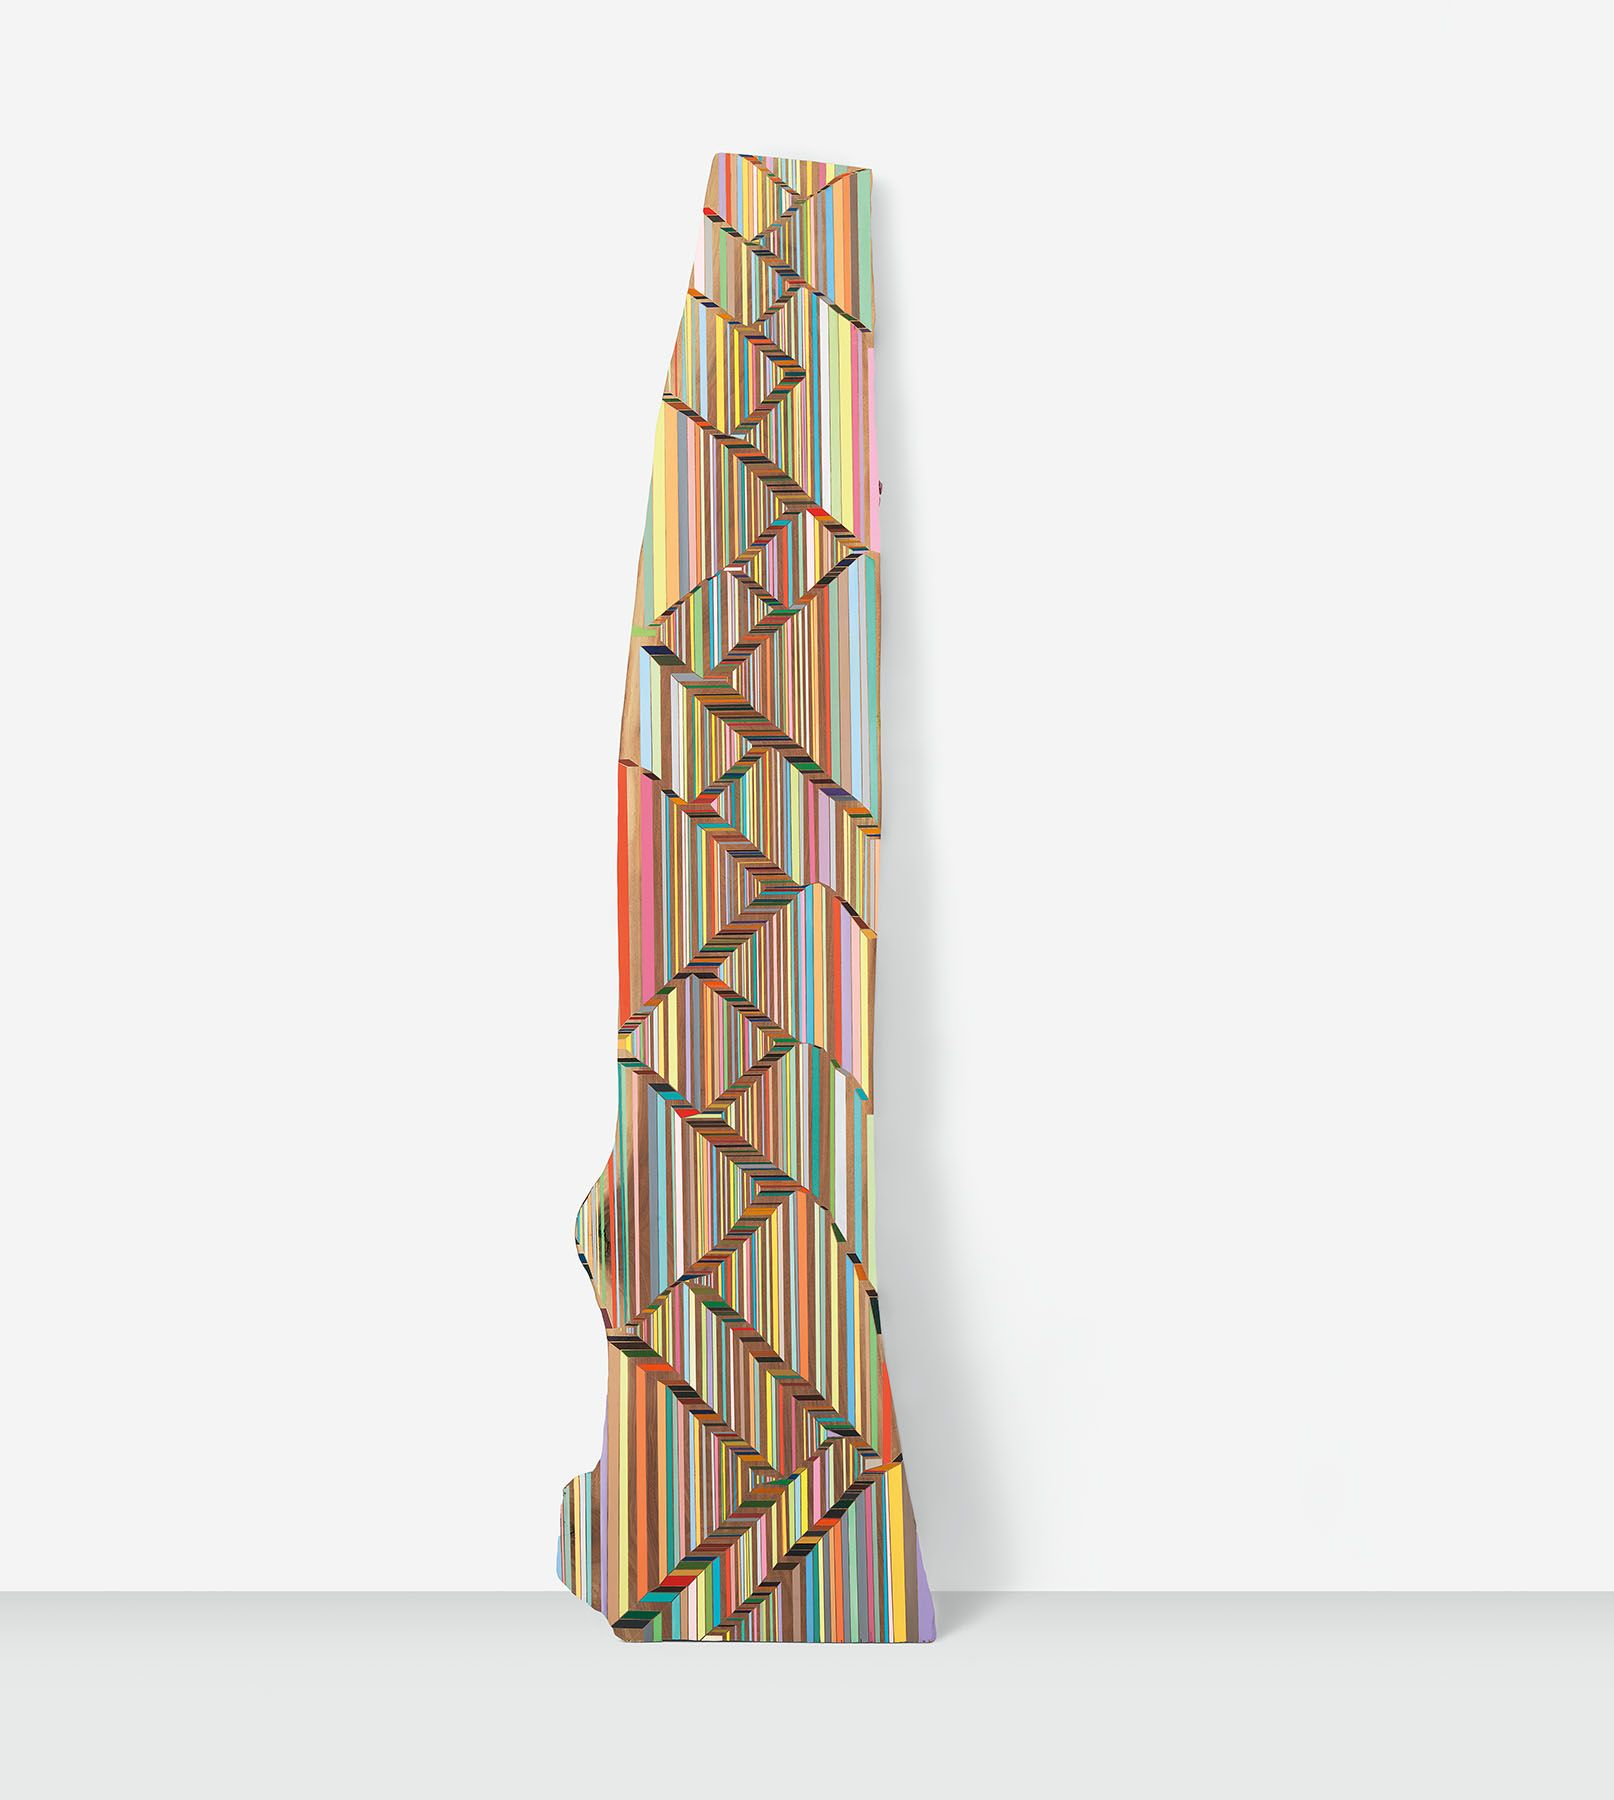 The Line Where an Object Begins and Ends, 2018, Acrylic on walnut, 102 x 26 x 1 1/2 inches, 259.1 x 66 x 3.8 cm, MMG#30710